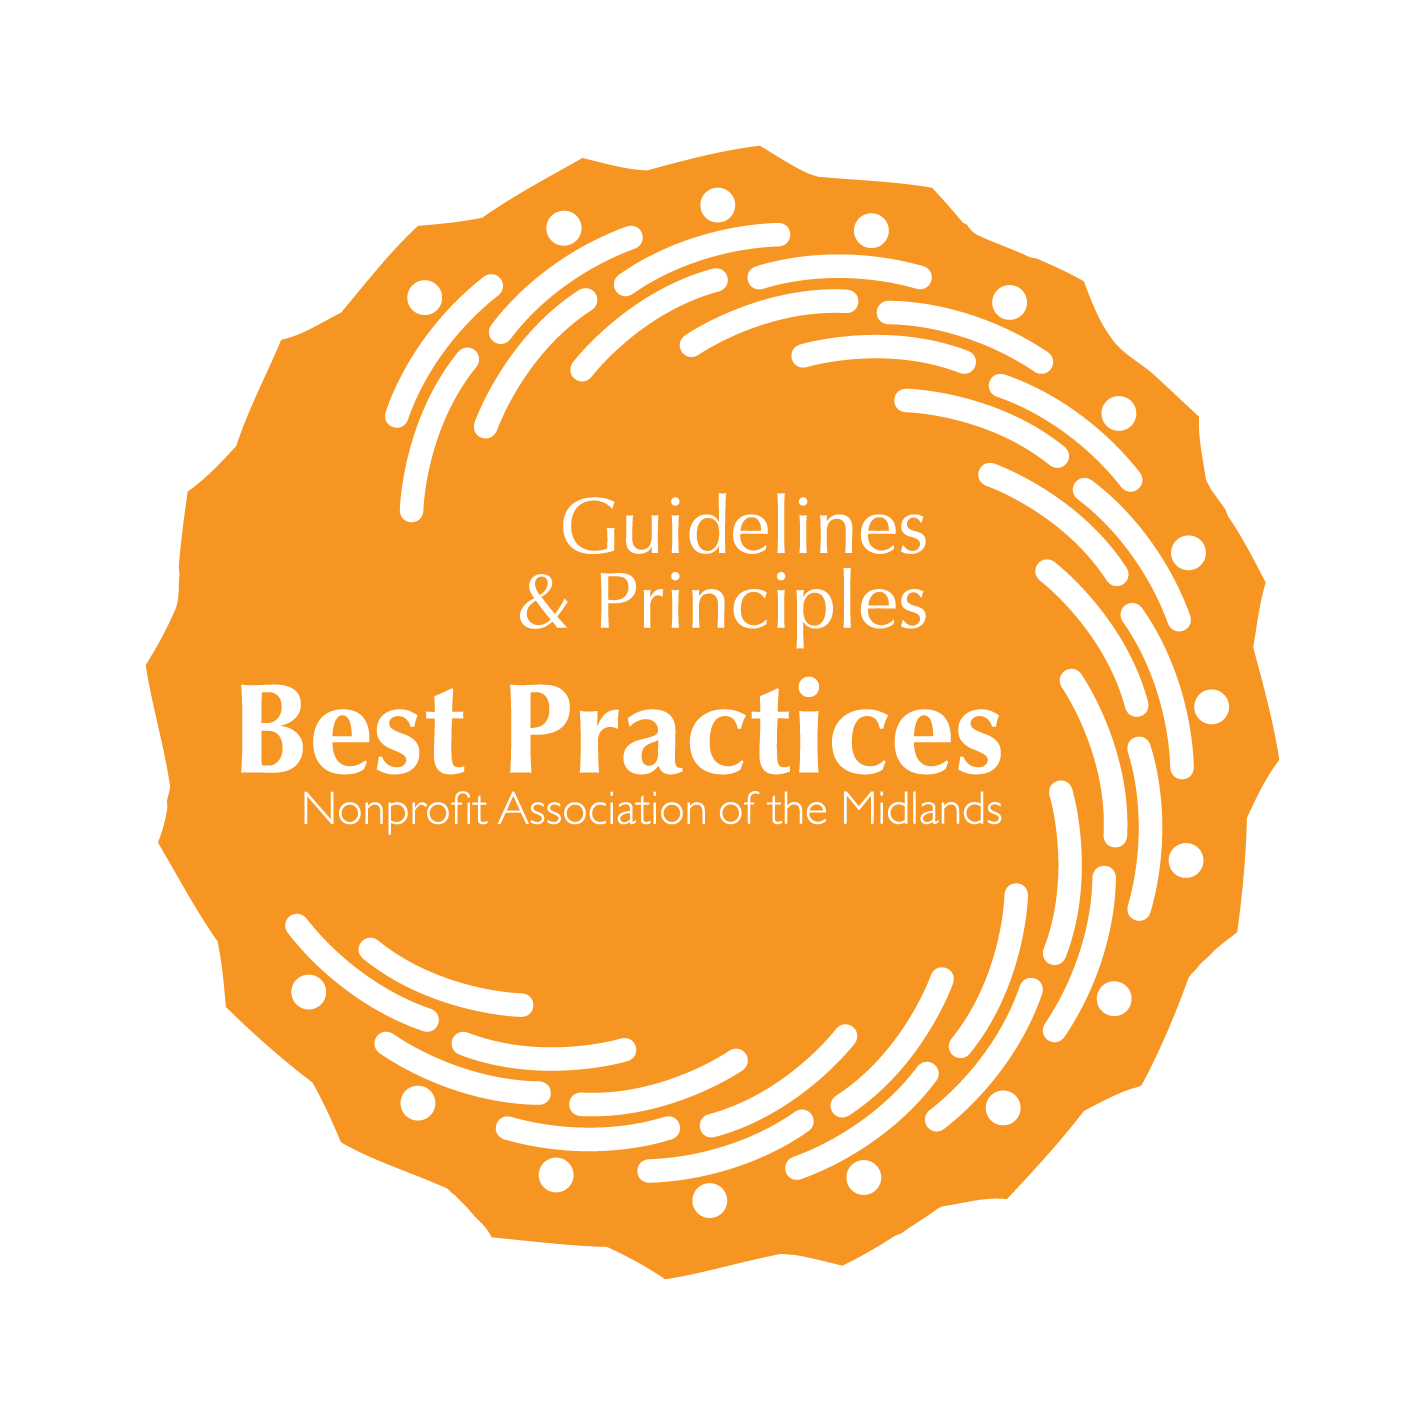 HFS earns Best Practices distinction from Nonprofit Association of the Midlands